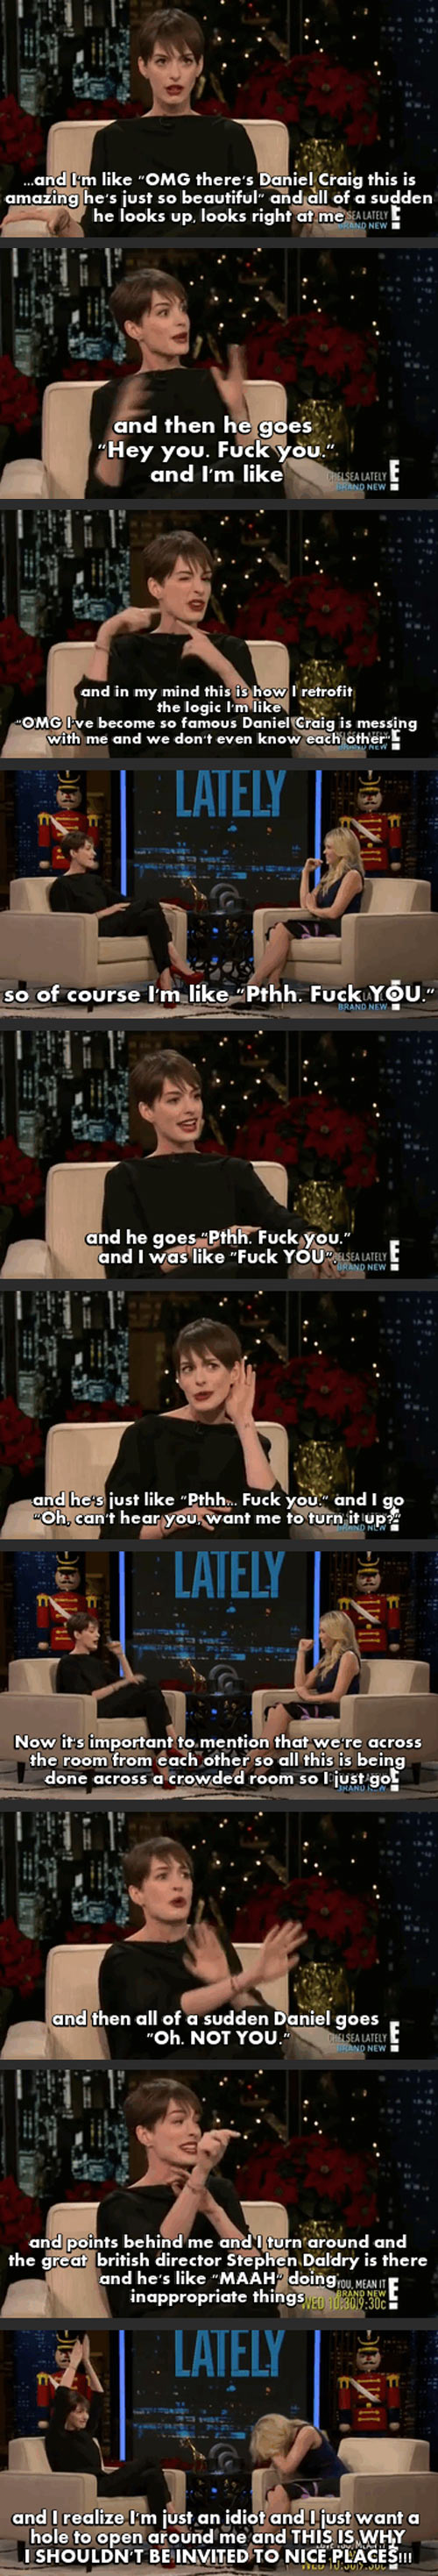 funny-Anne-Hathaway-Lately-TV-show